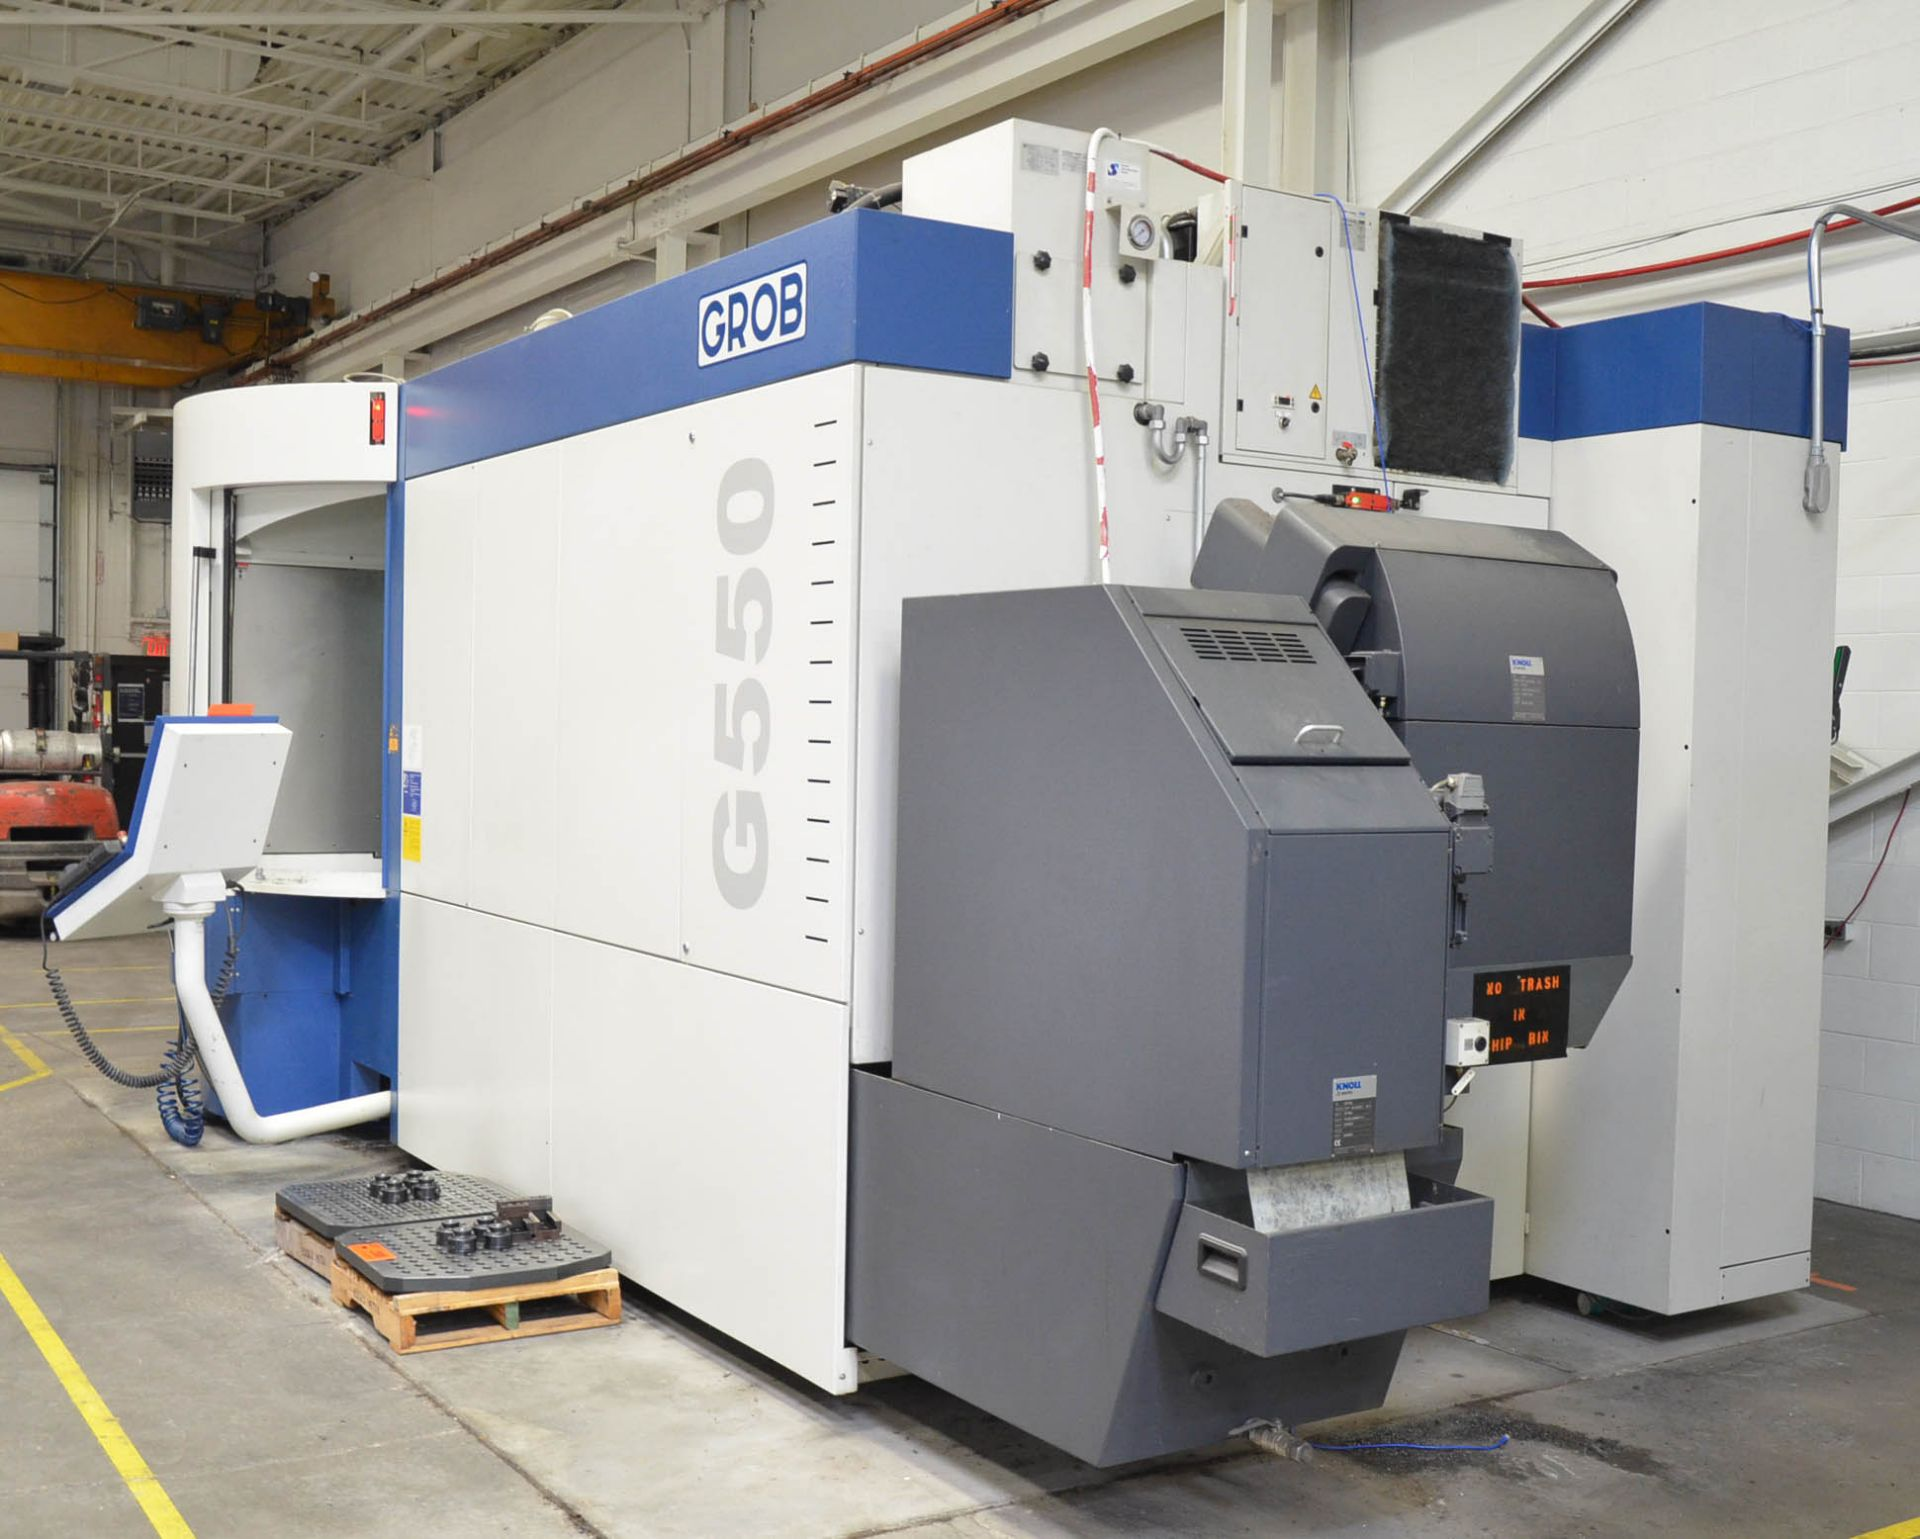 GROB (2014) G550 5-AXIS TWIN PALLET CNC MACHINING CENTER WITH HEIDENHAIN ITNC 530 CNC CONTROL, 24. - Image 6 of 13